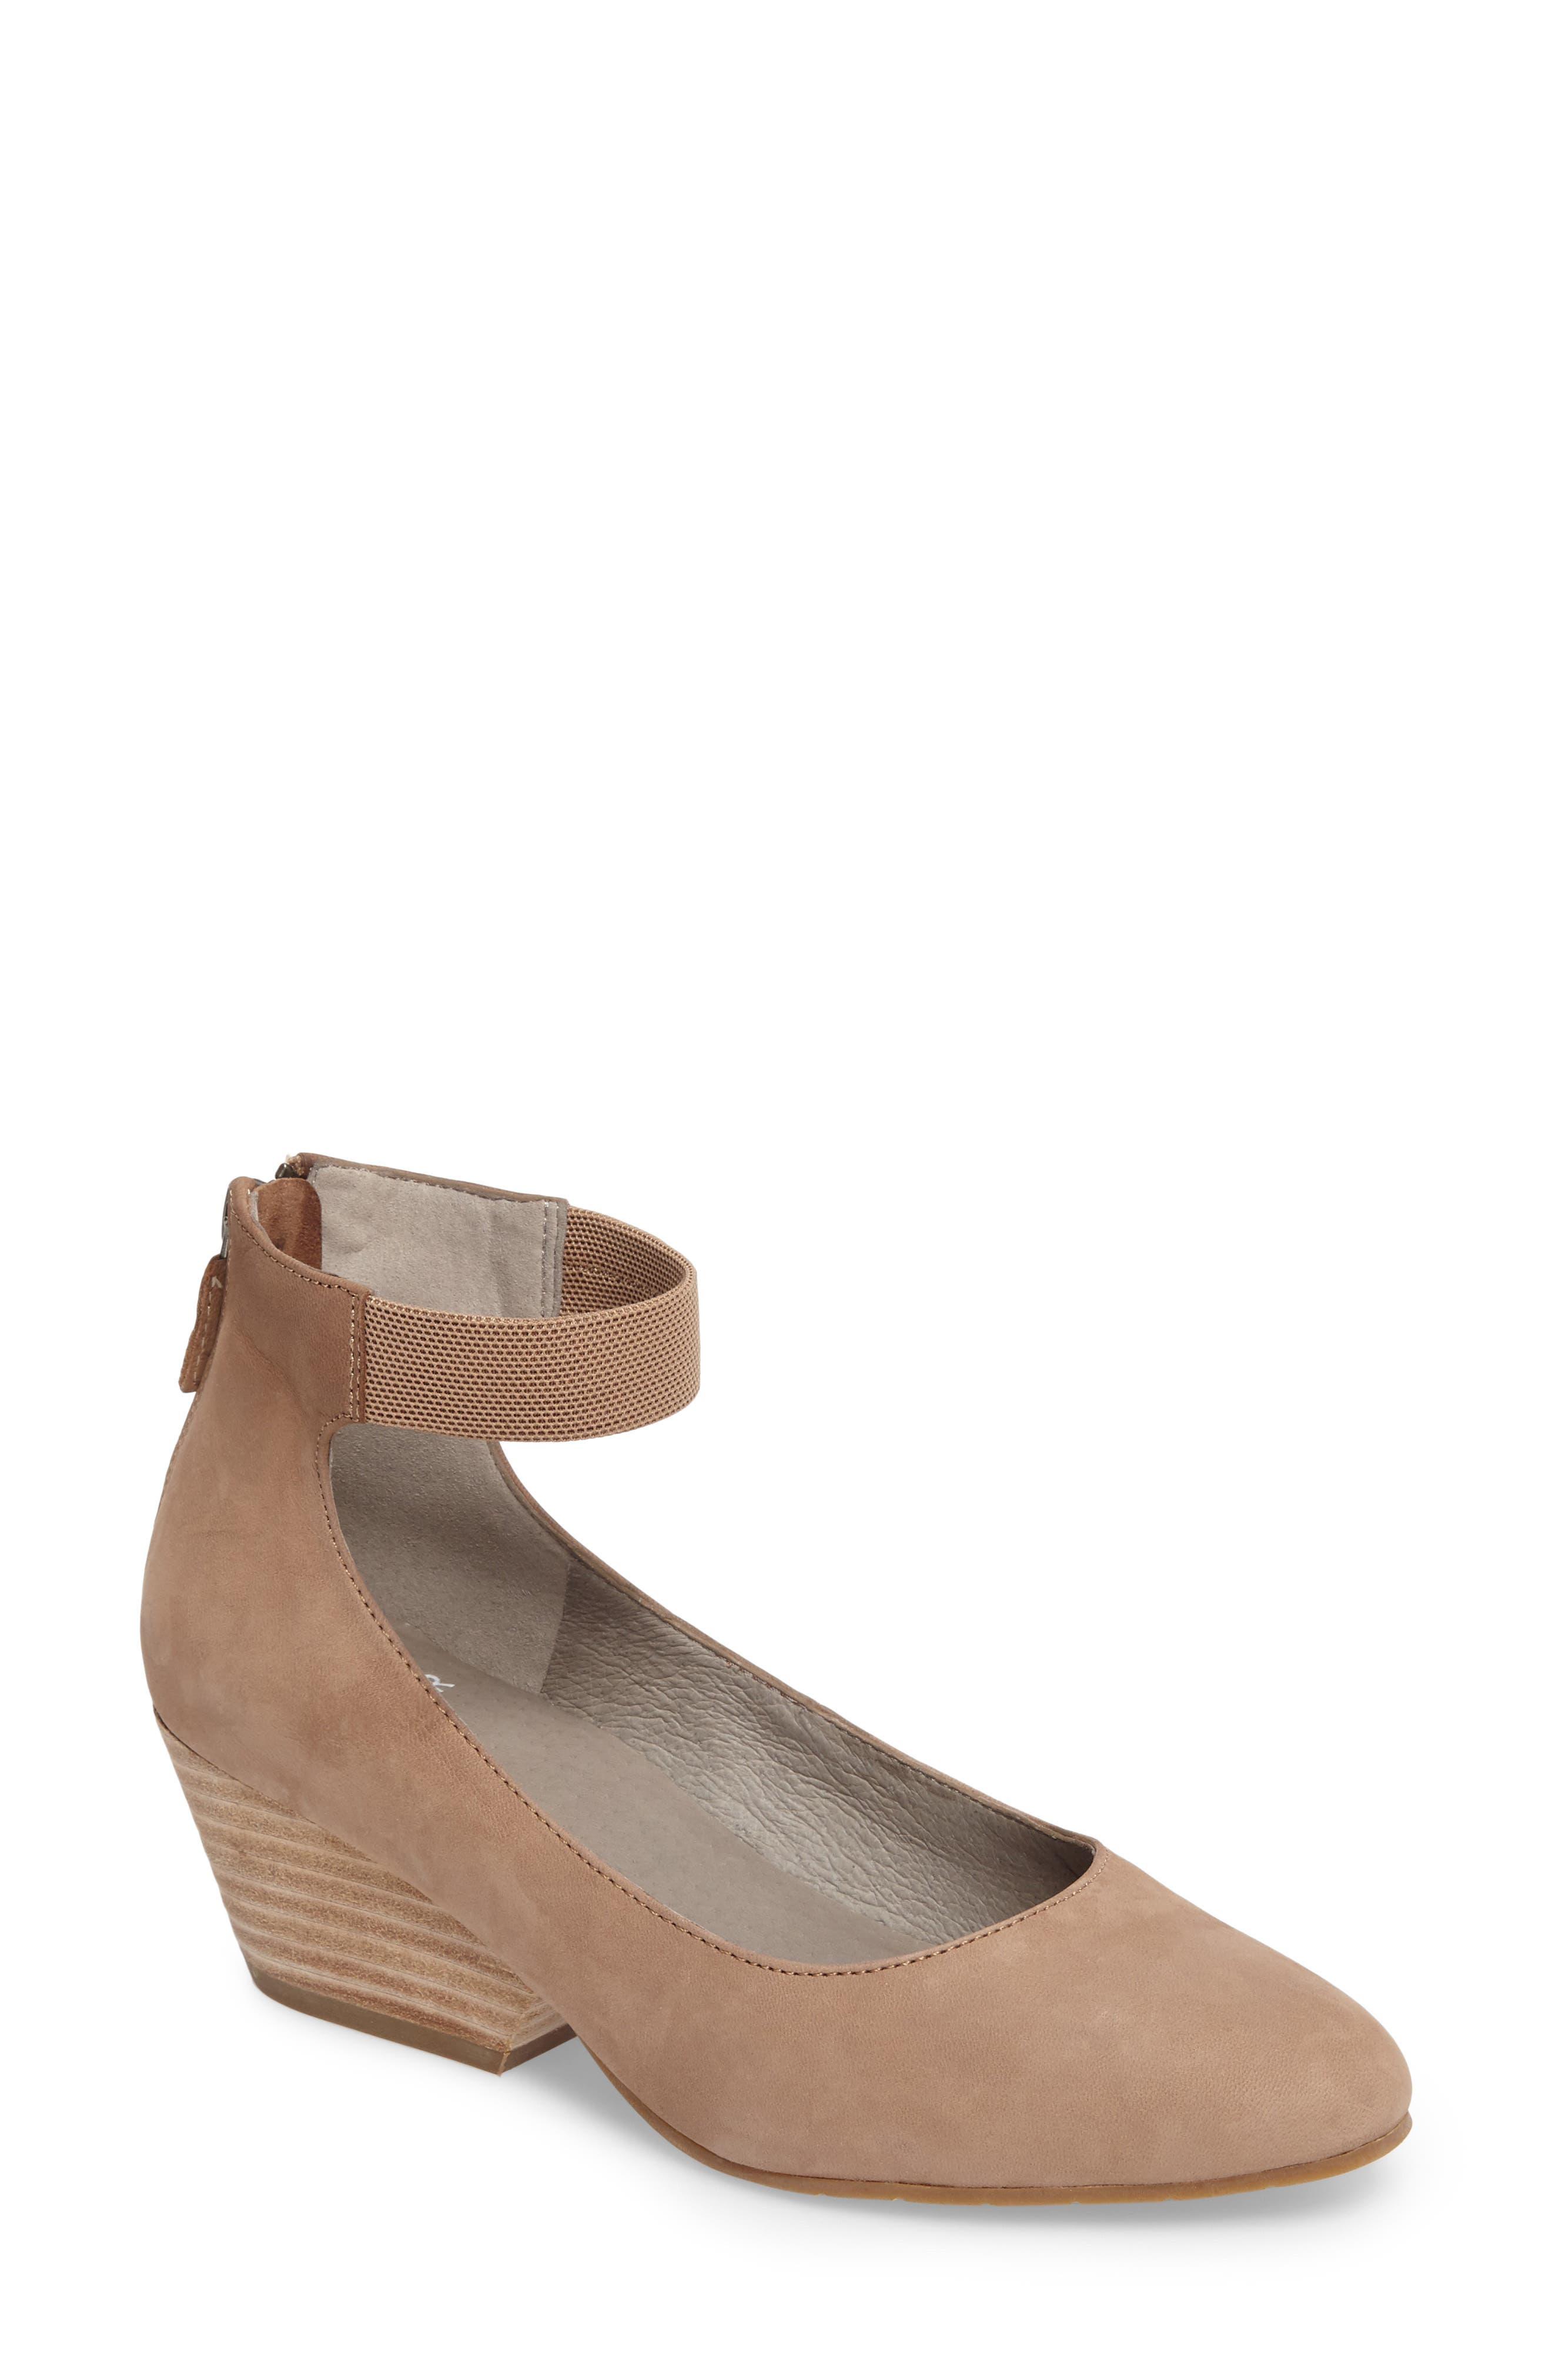 'Liz' Ankle Strap Pump,                             Main thumbnail 1, color,                             Earth Nubuck